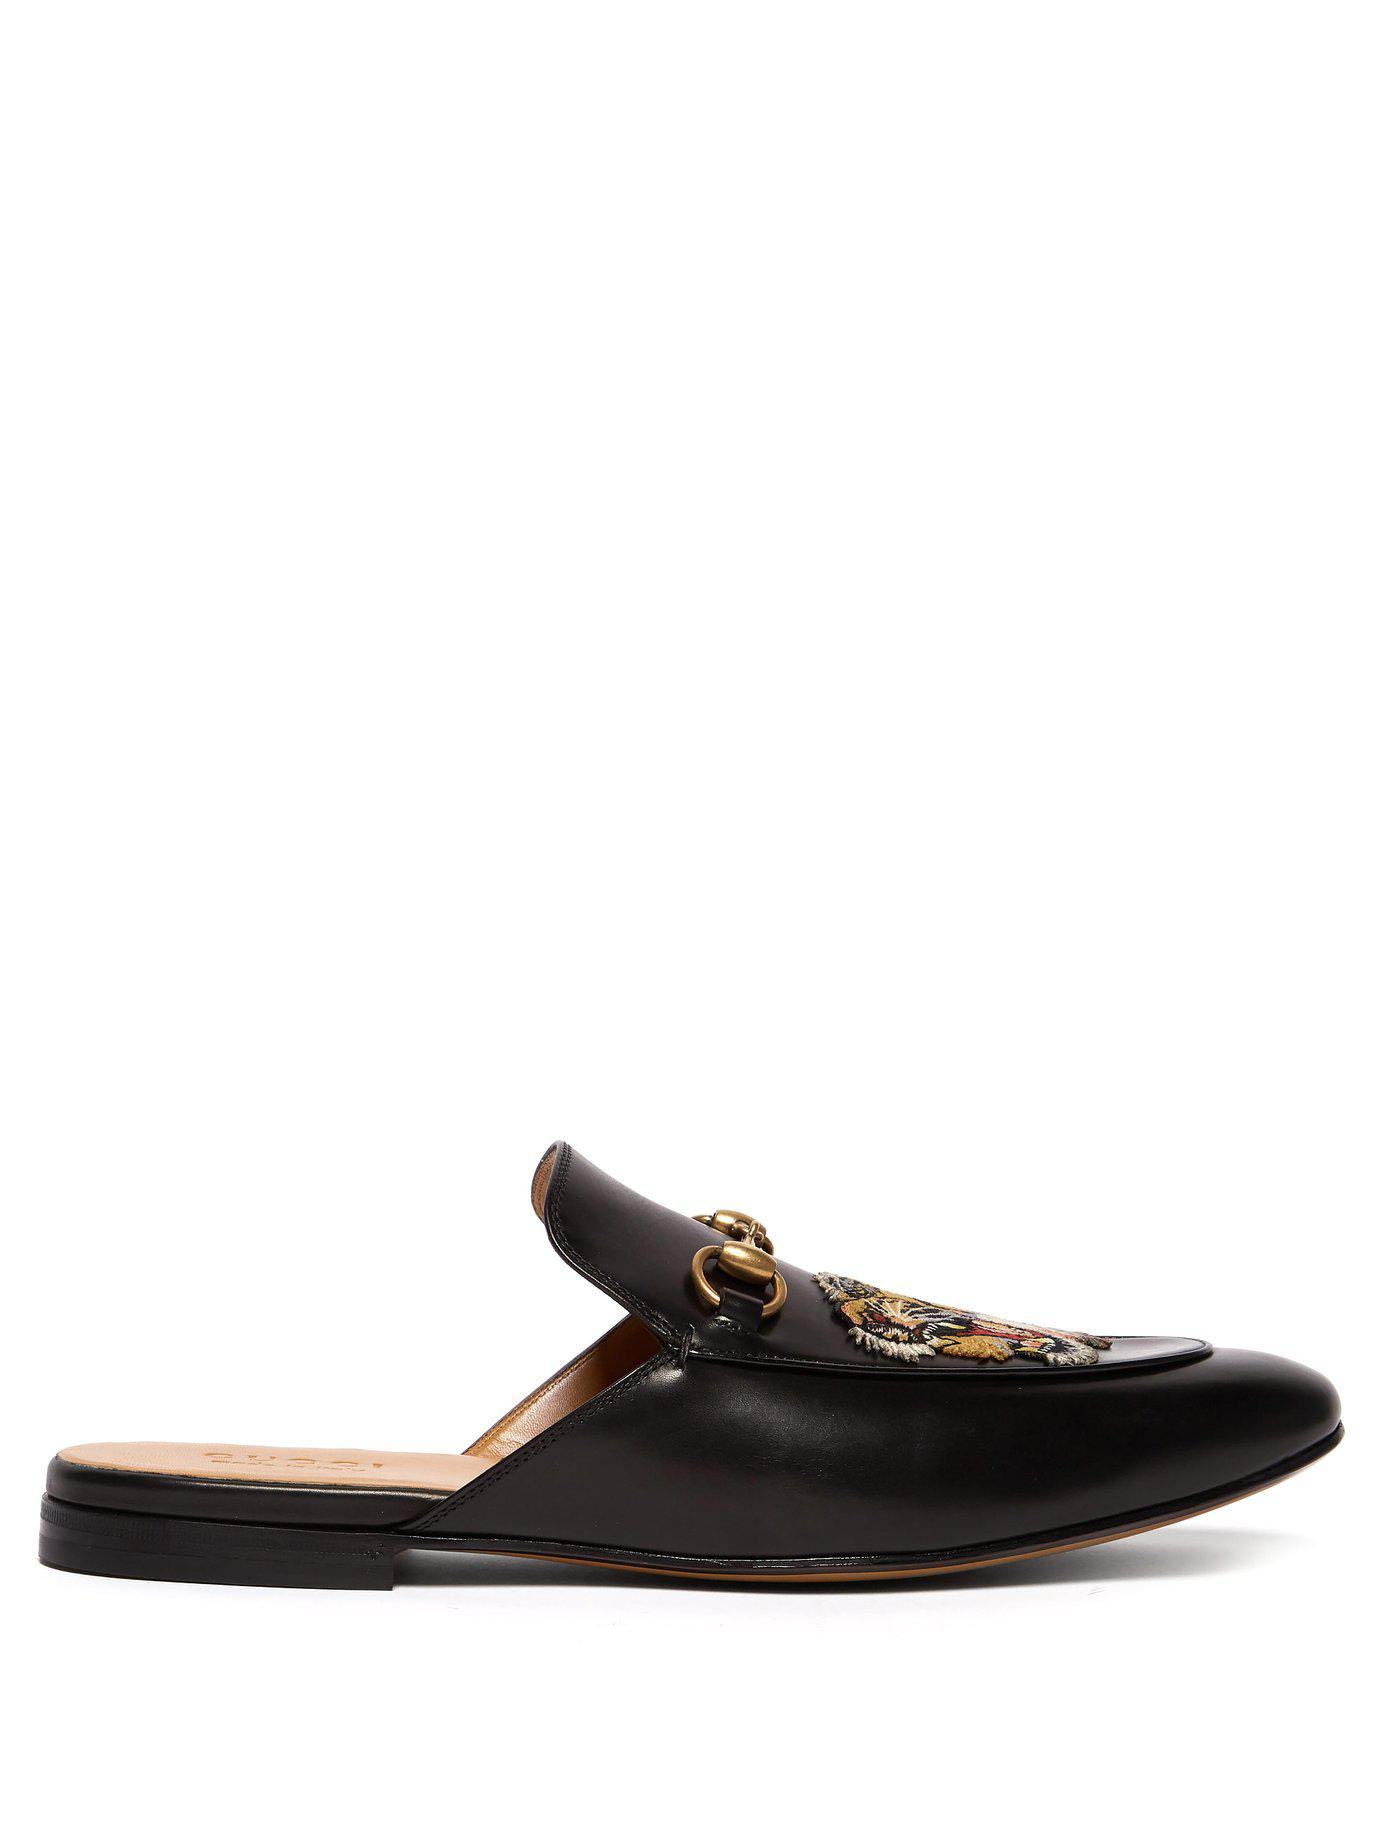 56d8cc86563 Lyst - Gucci Kings Tiger Appliqué Backless Leather Loafers in Black ...